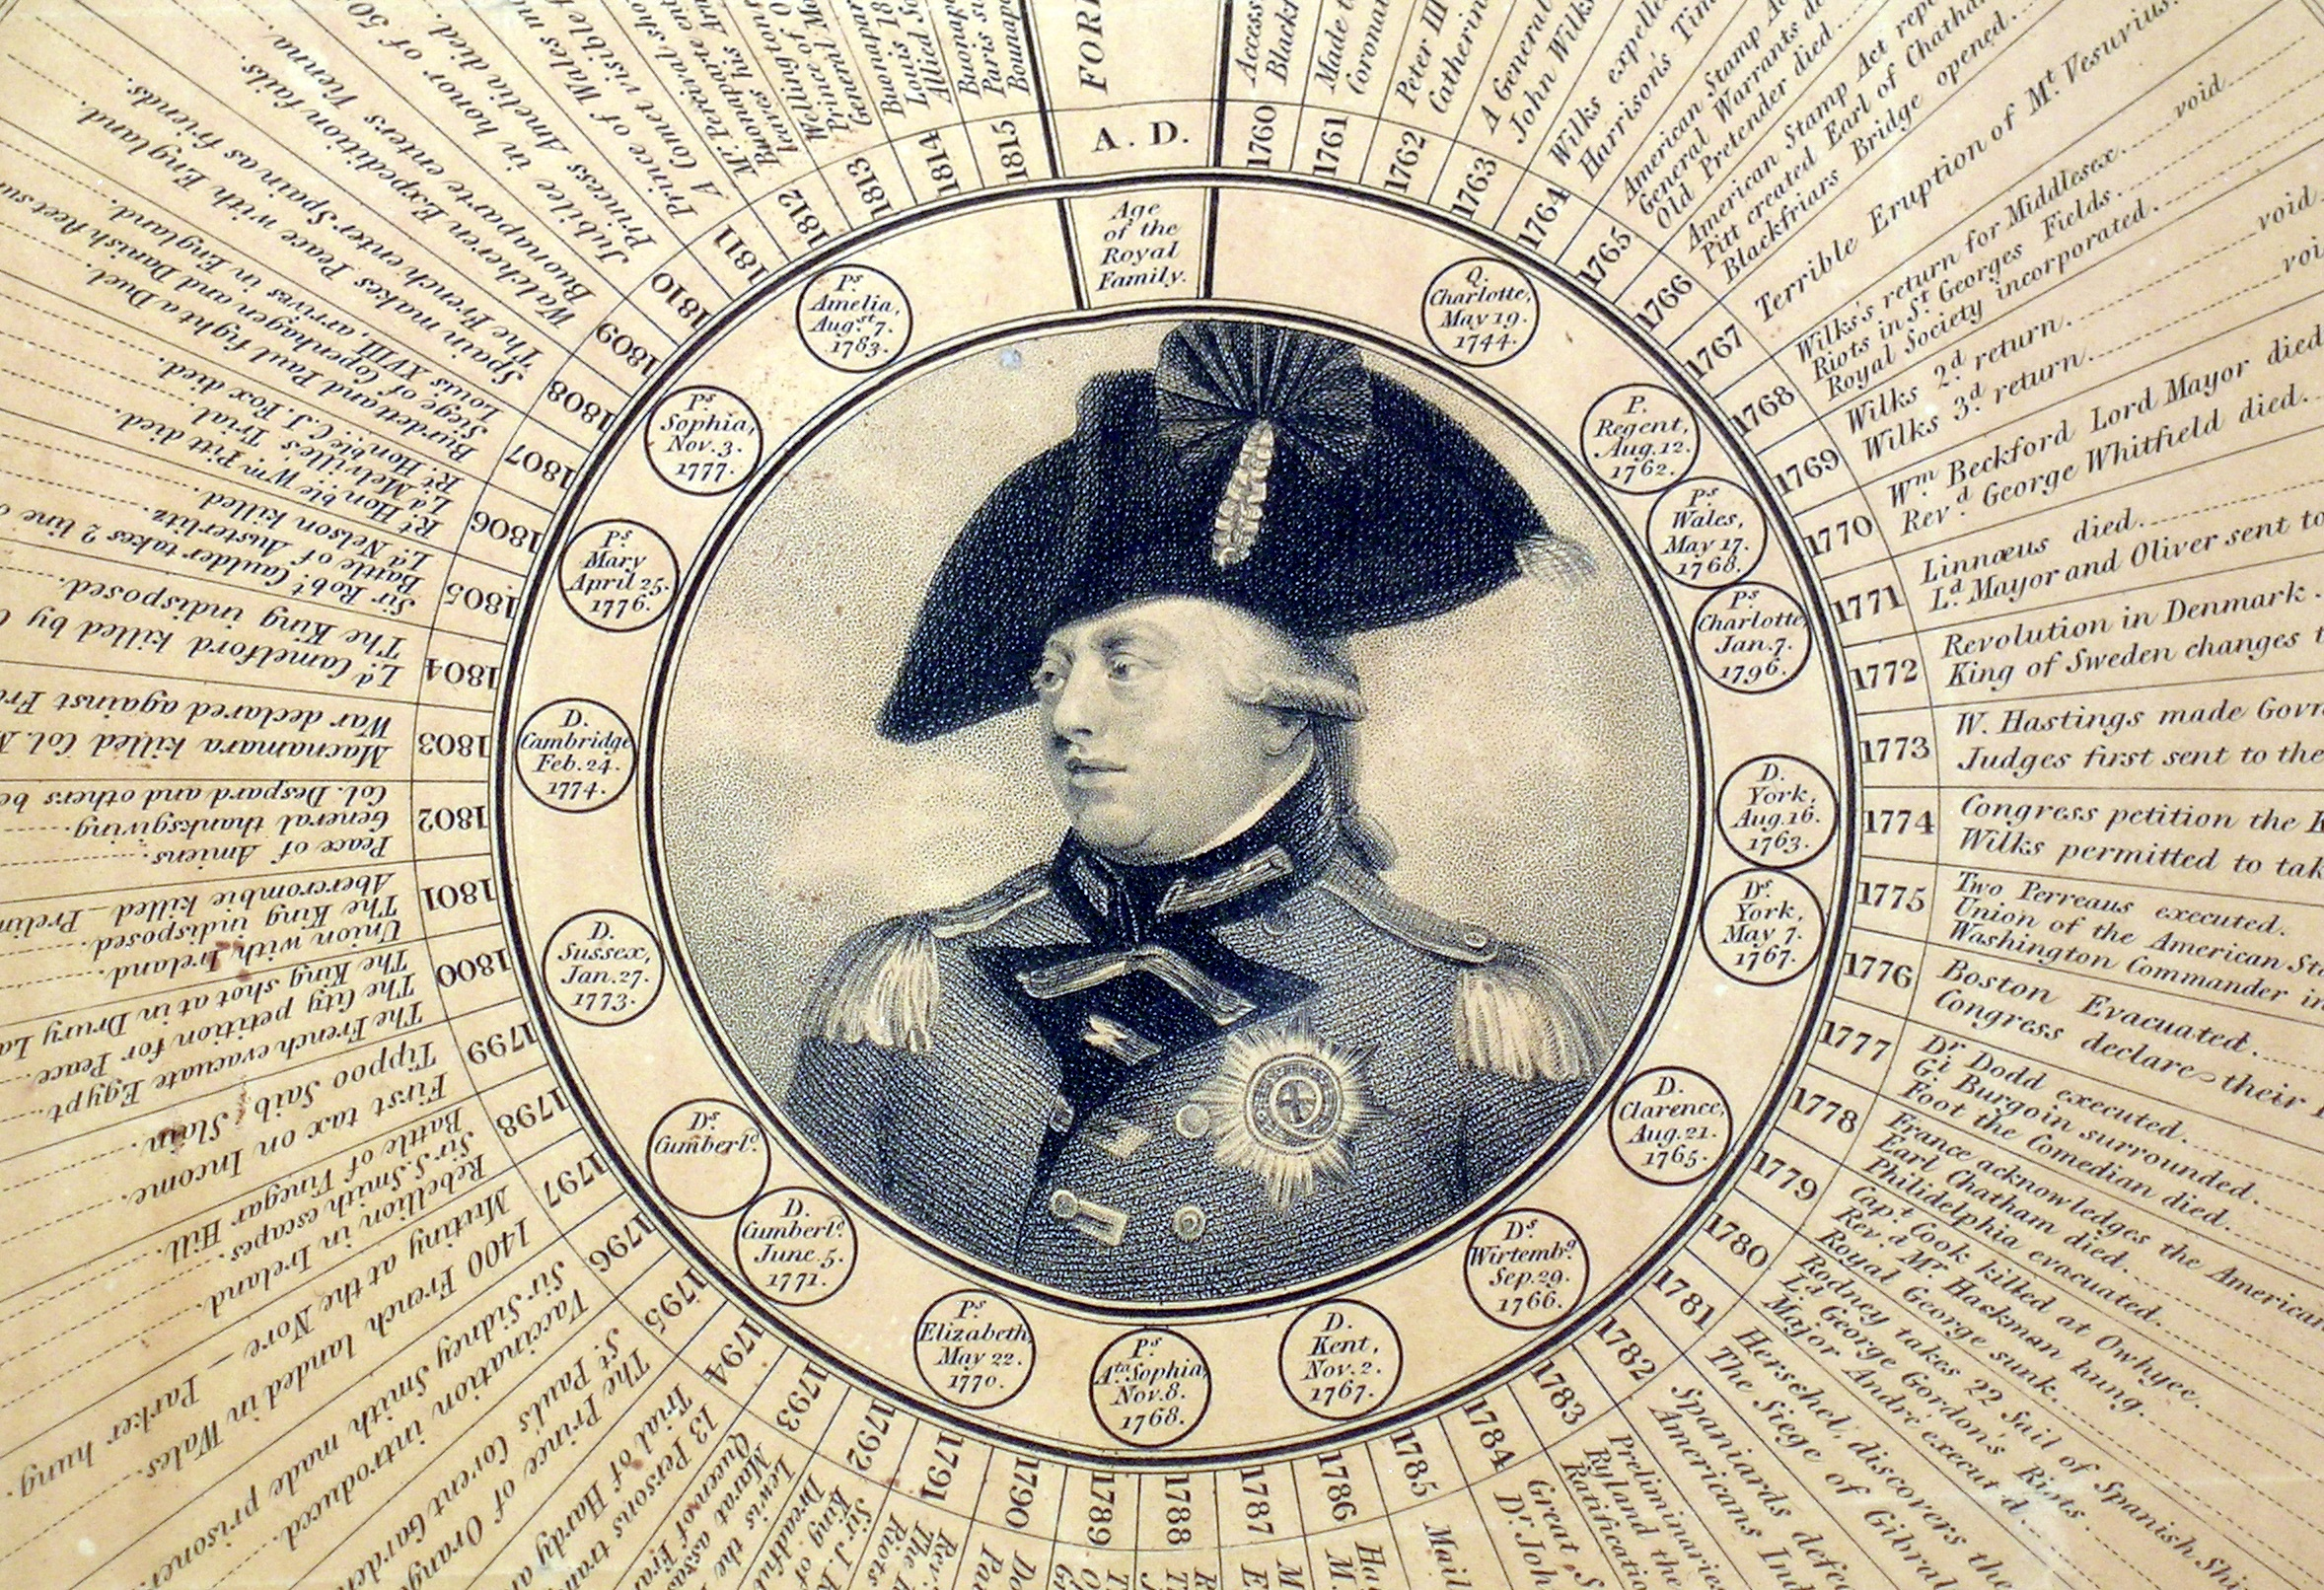 Perspective Chronology of the Reign of King George the Third (0053.1886) Engraved circular with an image of King George in the center. Major events and information about his reign are arranged by year coming out of the center image as spokes.